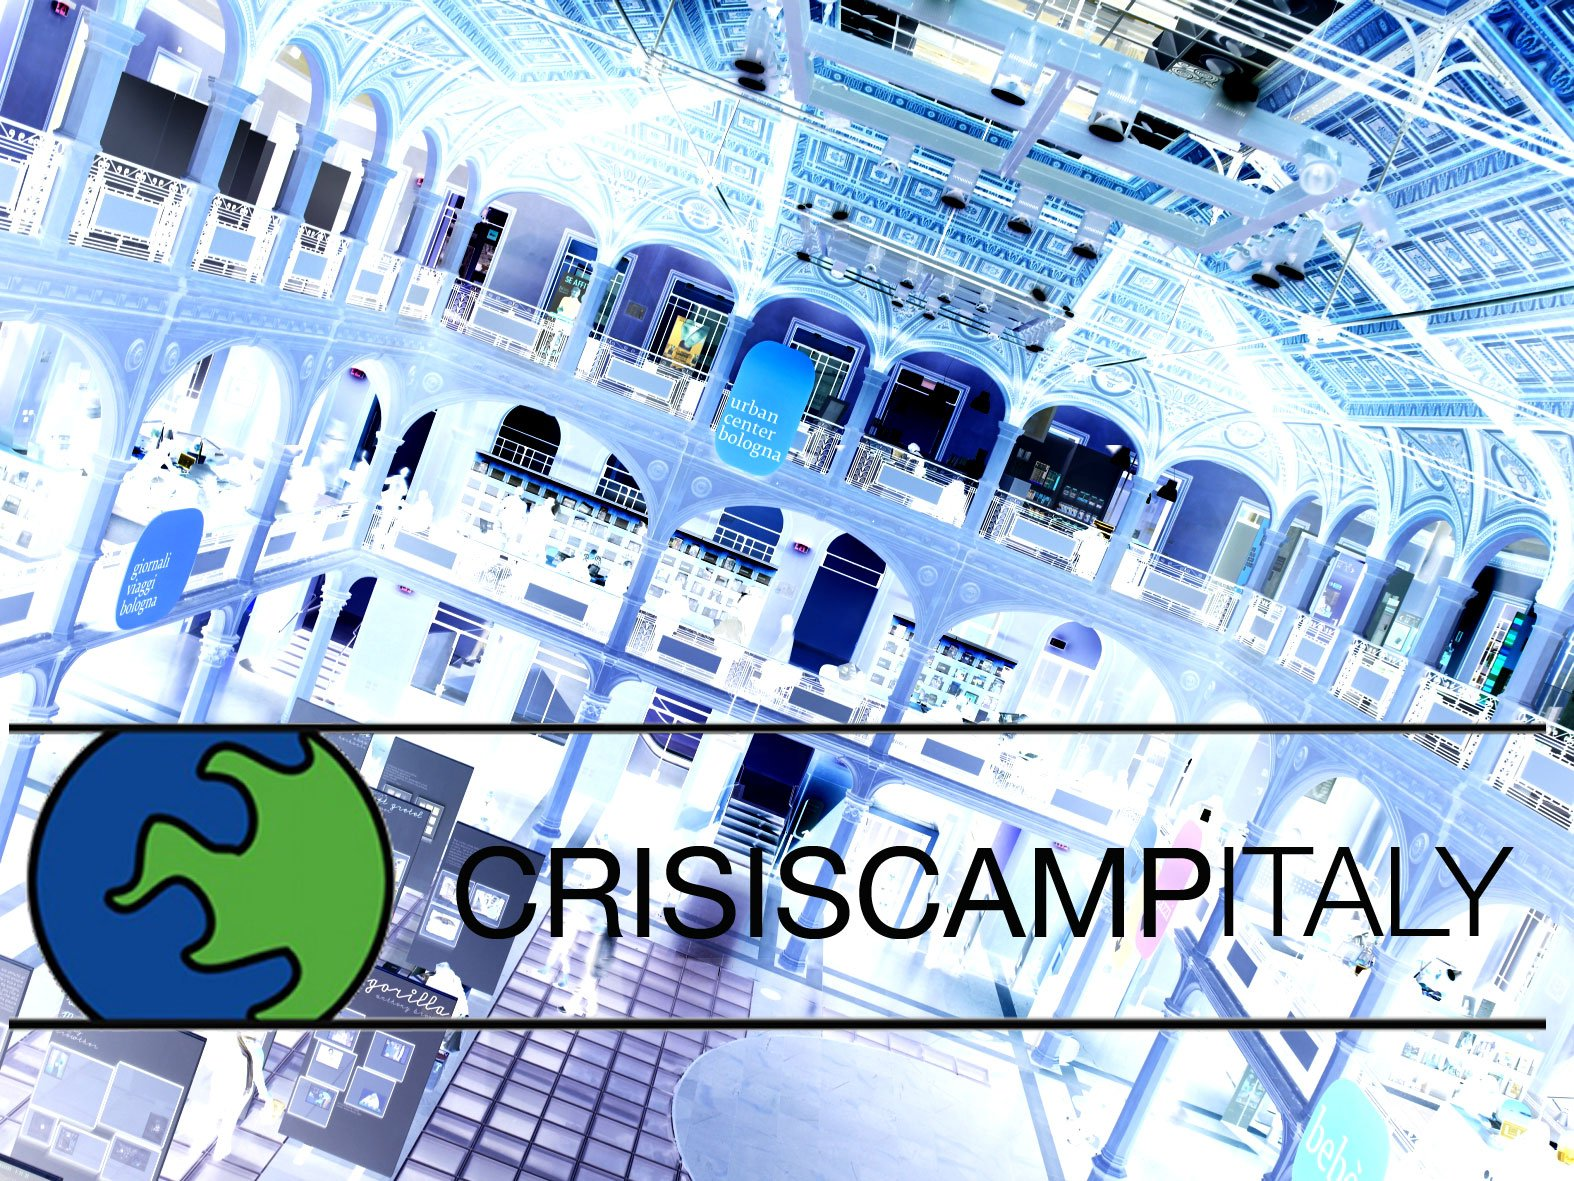 Crisis Camp Italy | #crisicampit